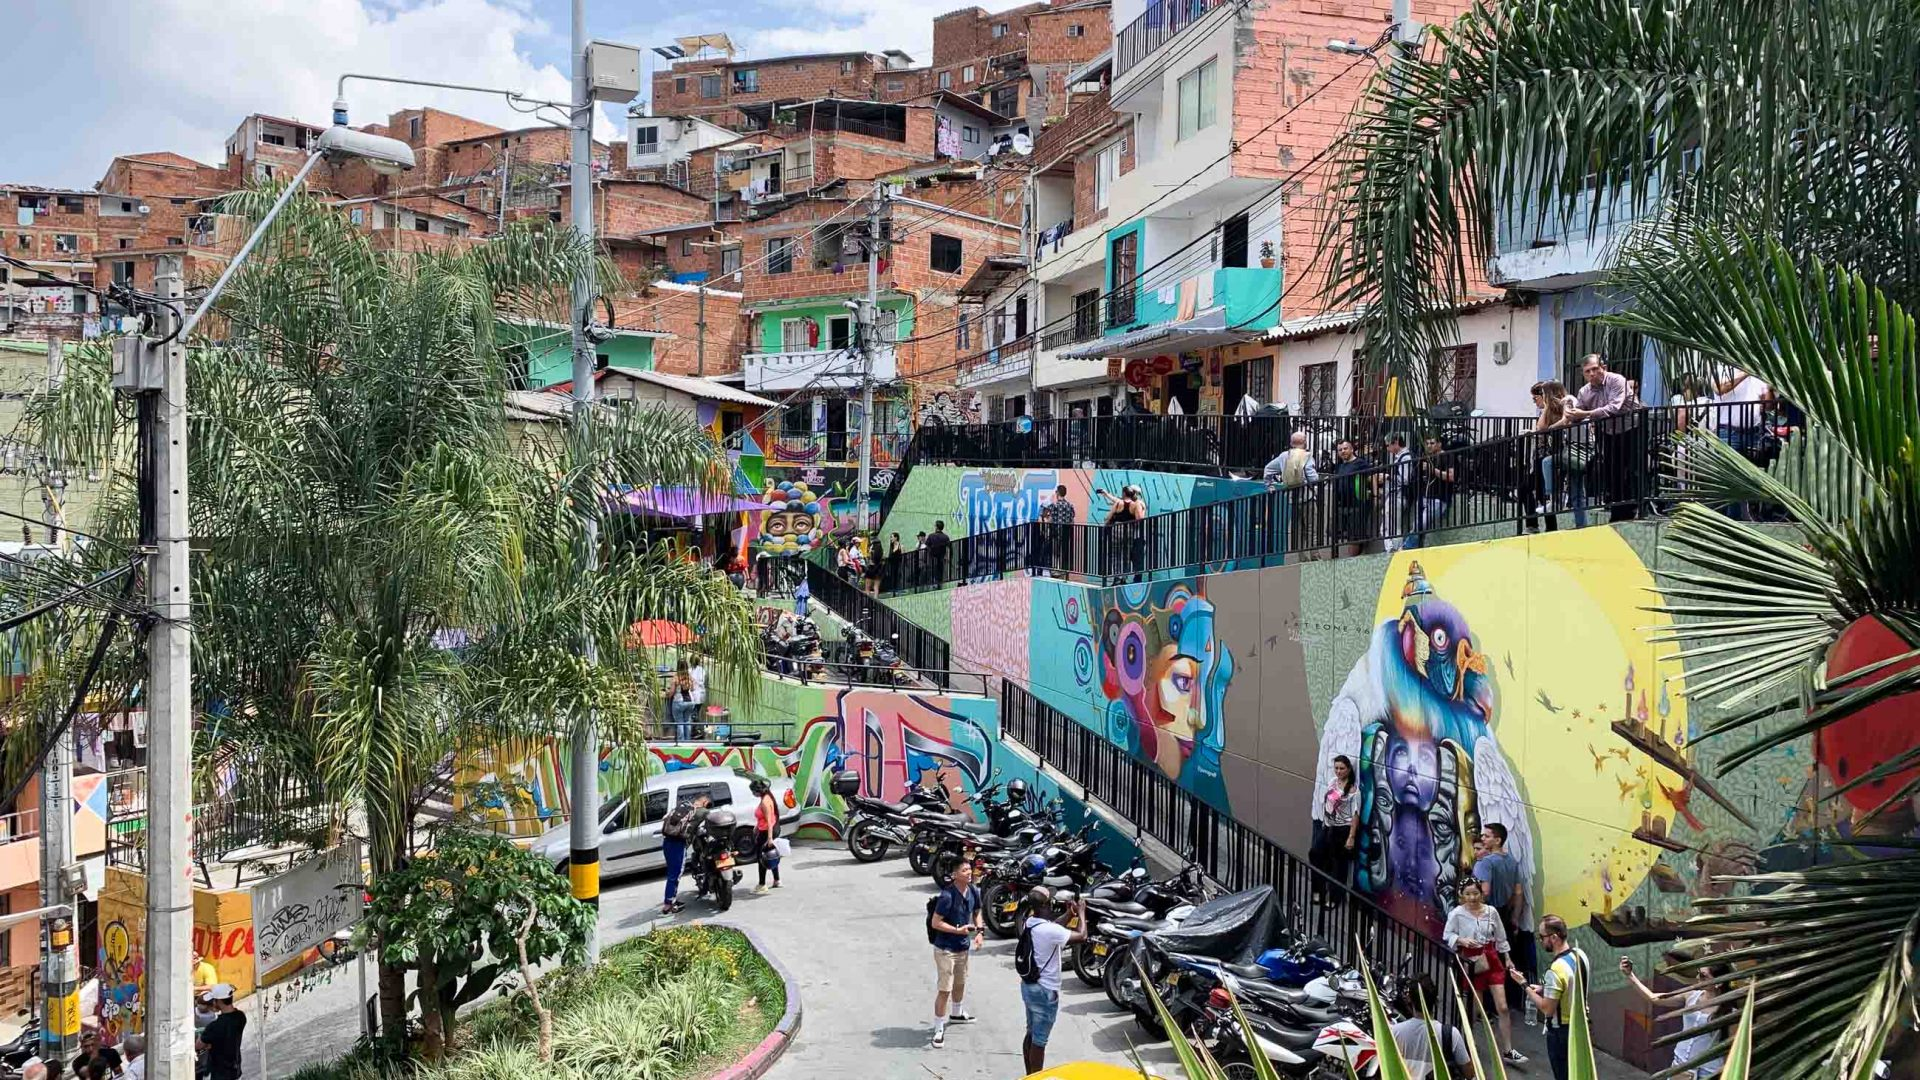 Solo travel: One of the colorful streets in Comuna 13 in Medellín, Colombia.